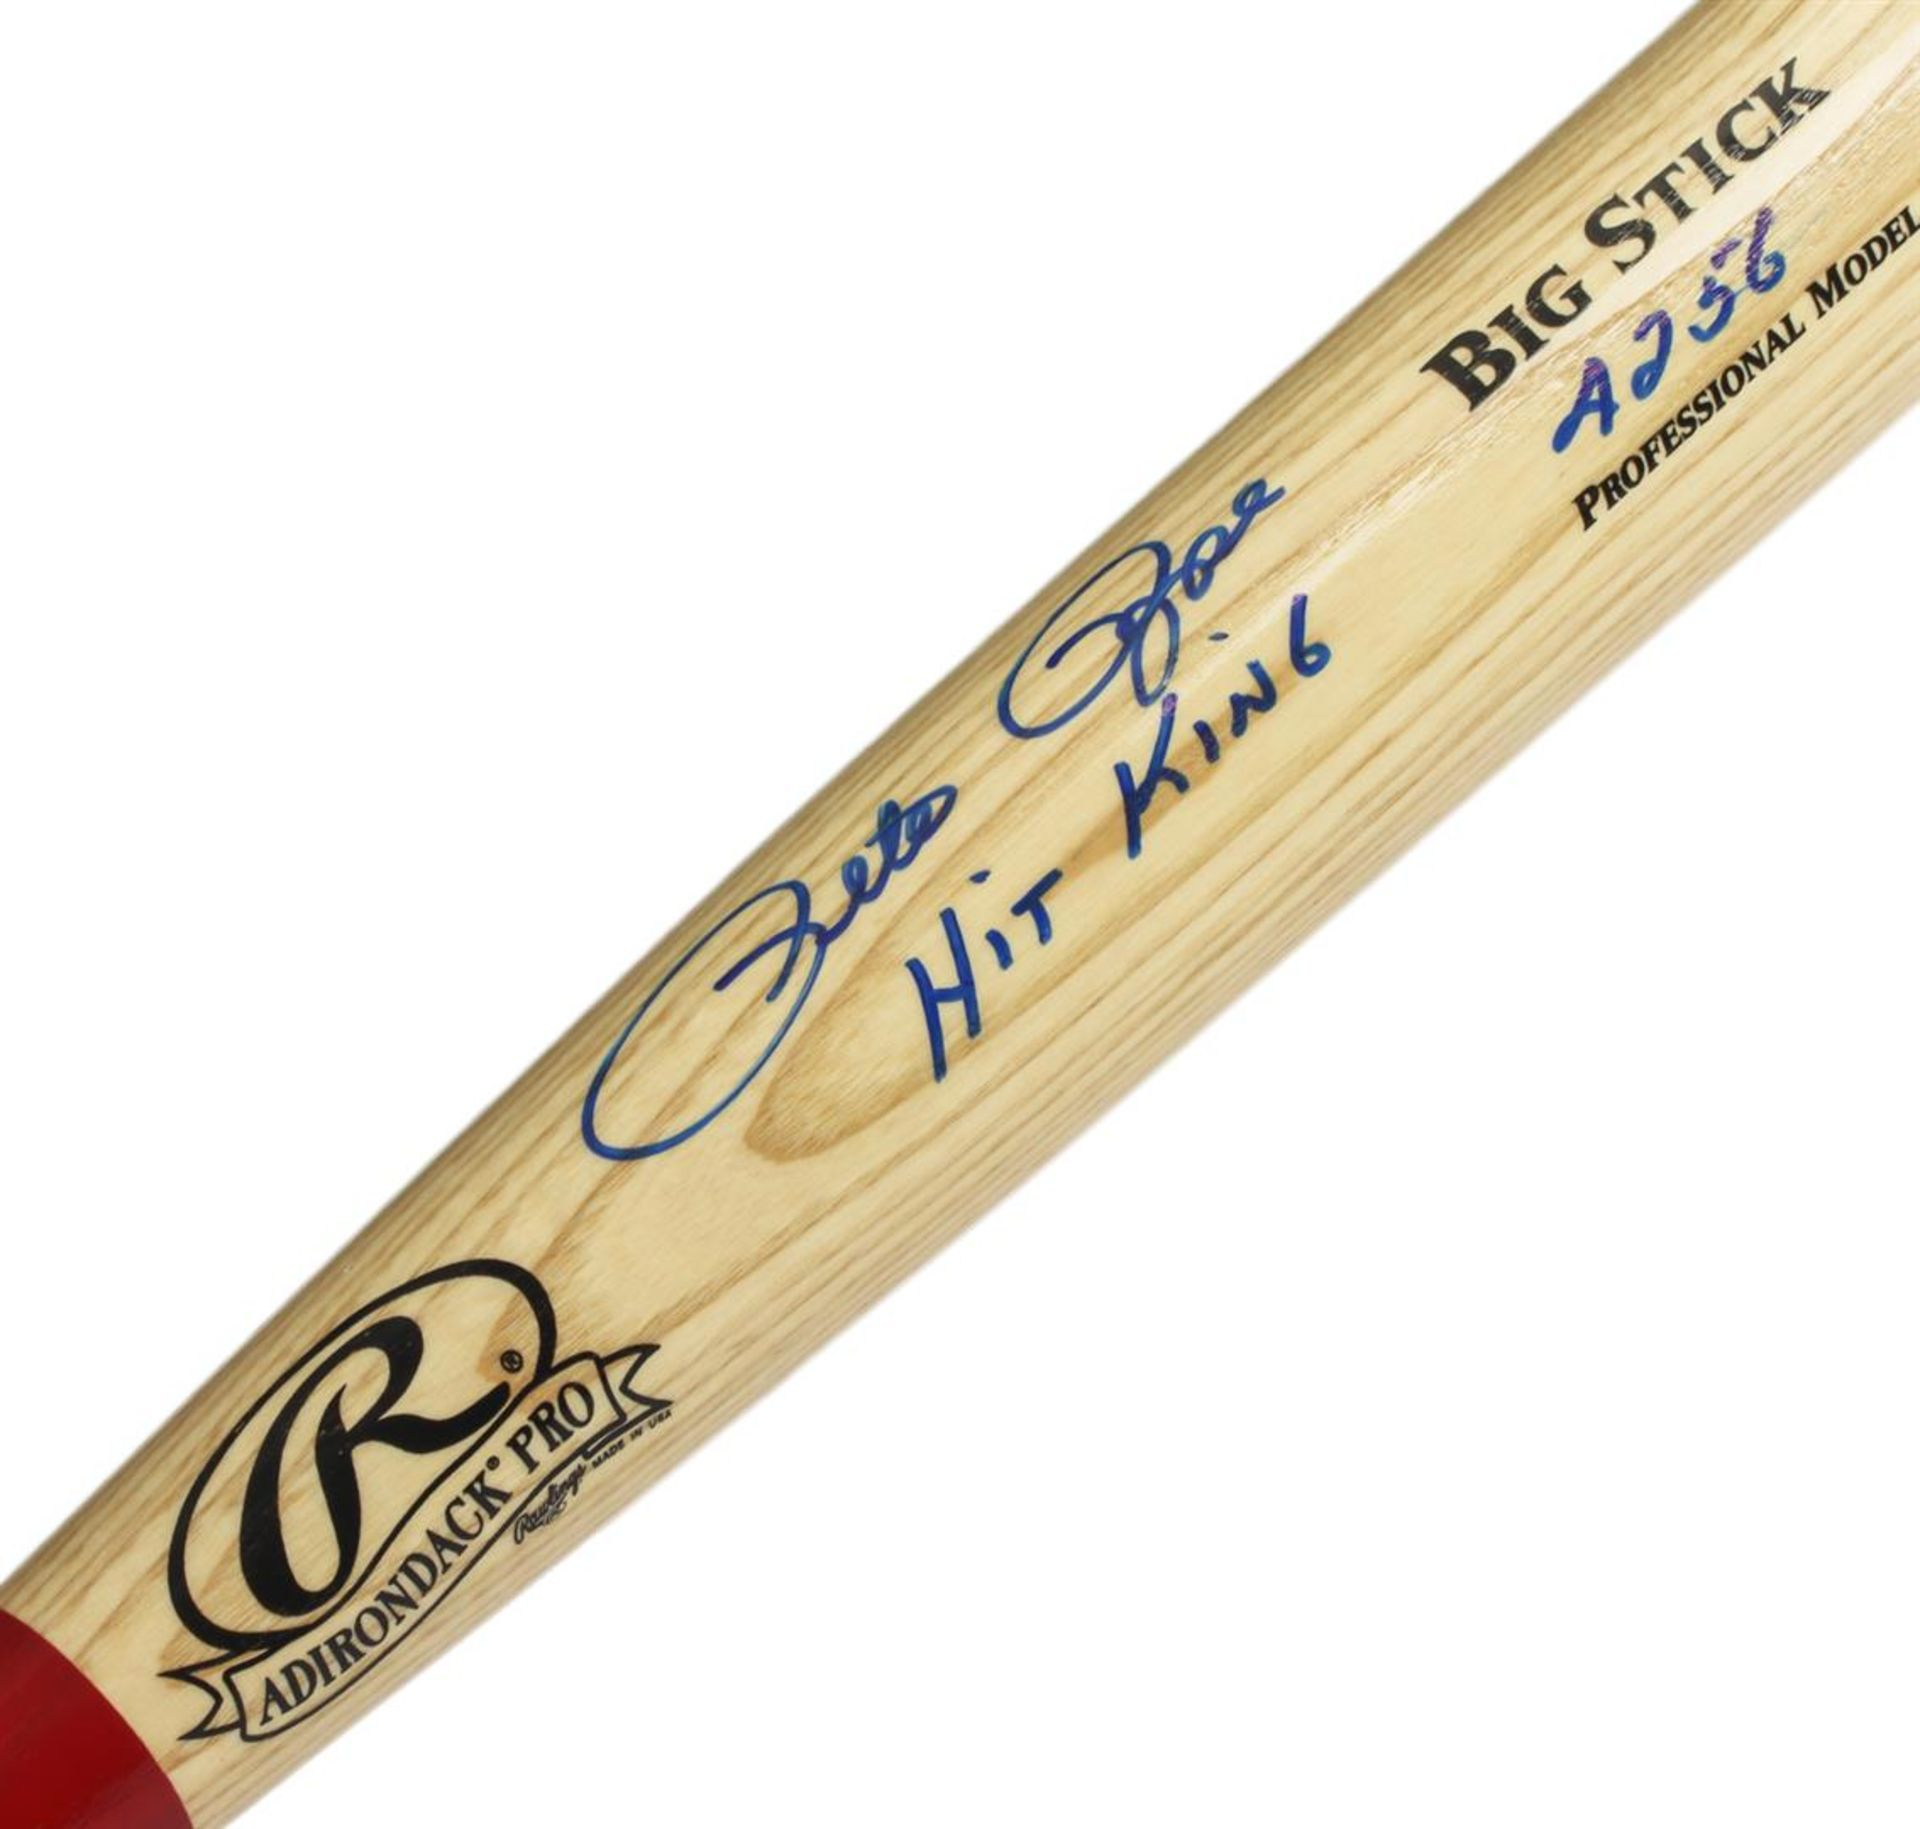 Autographed Pete Rose Baseball Bat - Image 2 of 3